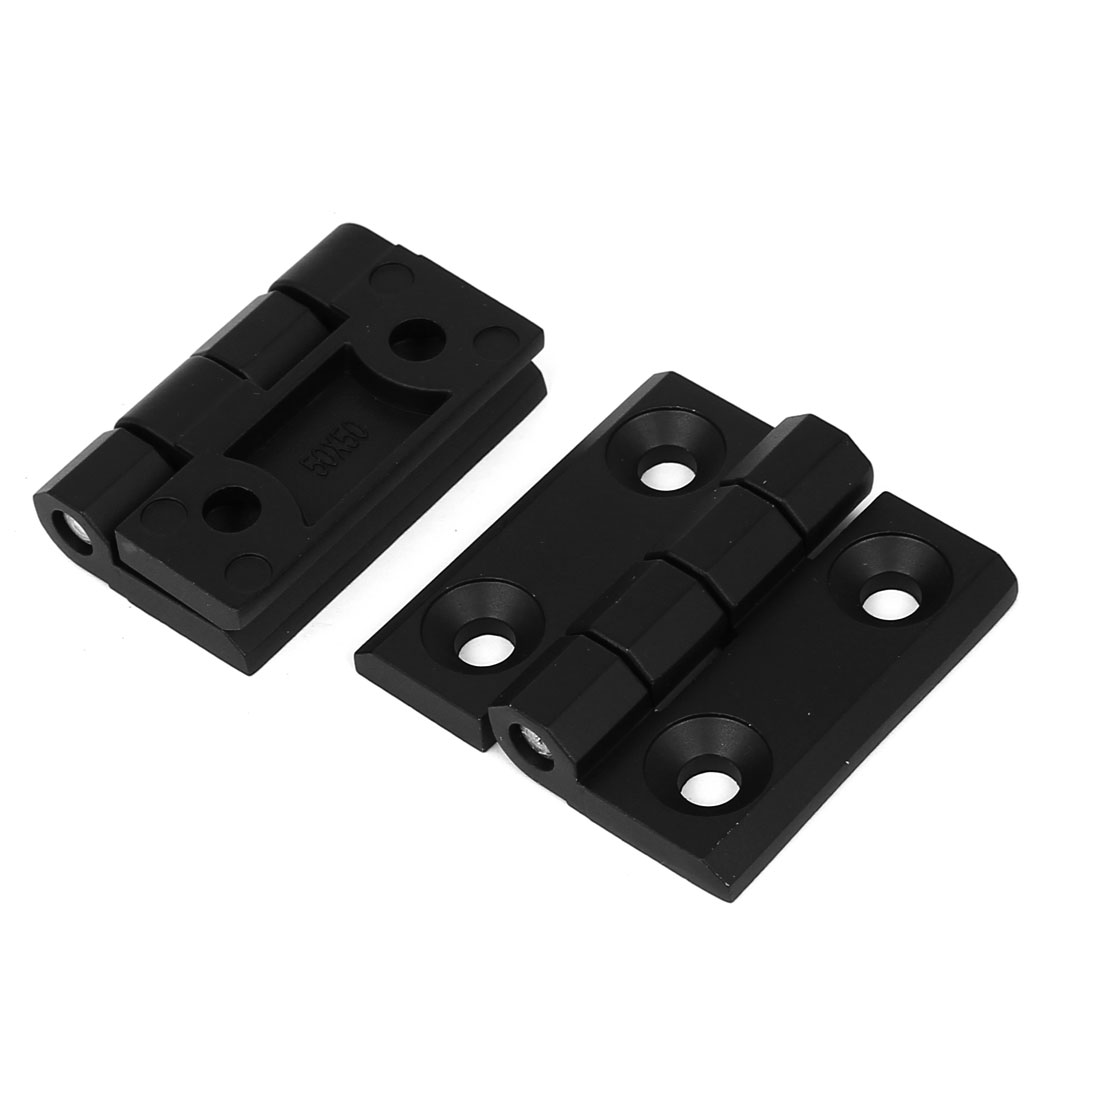 Closet Cupboard Cabinet 50mm x 50mm Zinc Alloy Door Butt Hinge Black 2pcs